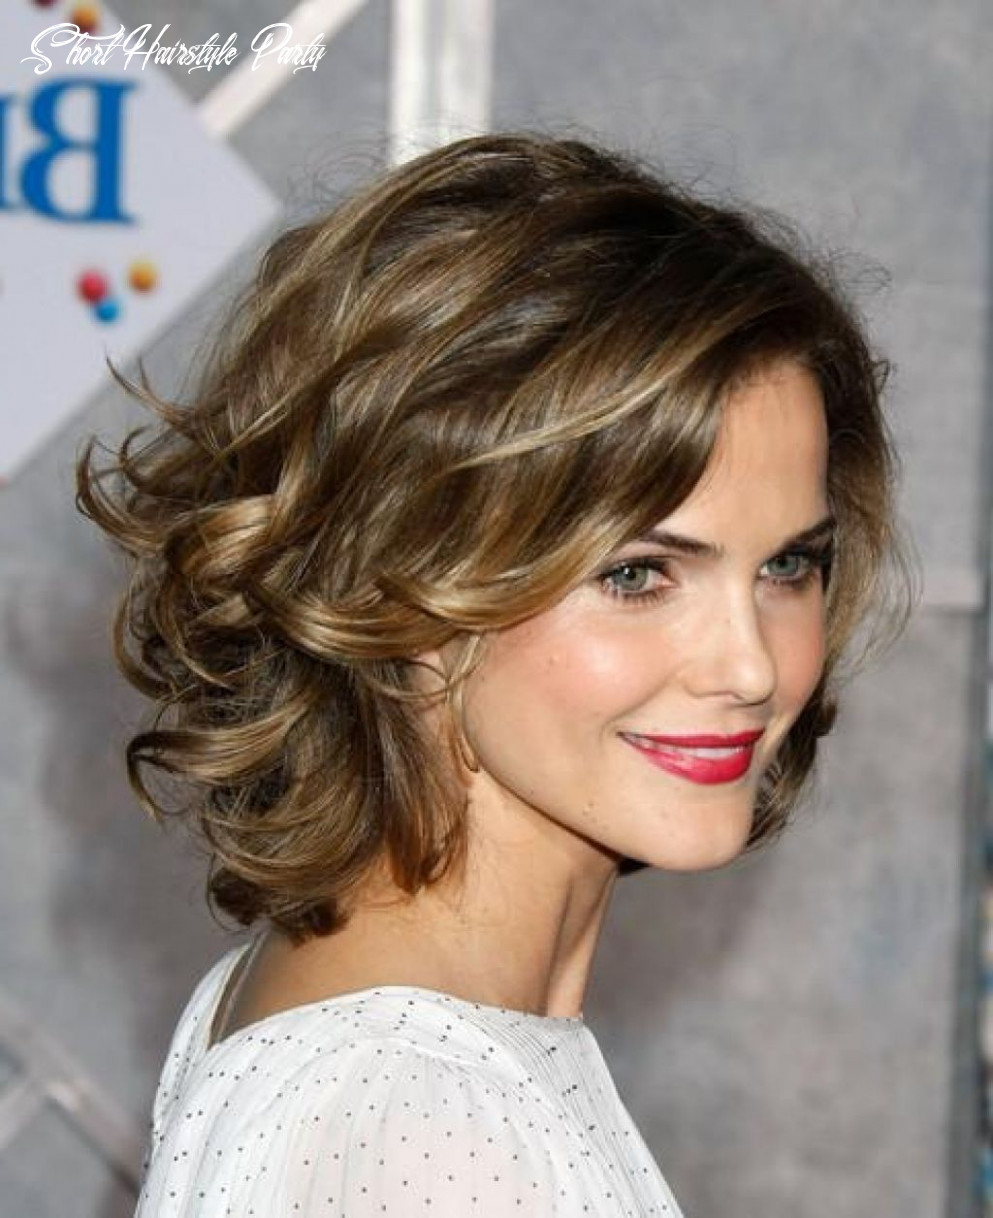 Short hairstyles wedding party hairstyles by unixcode   medium